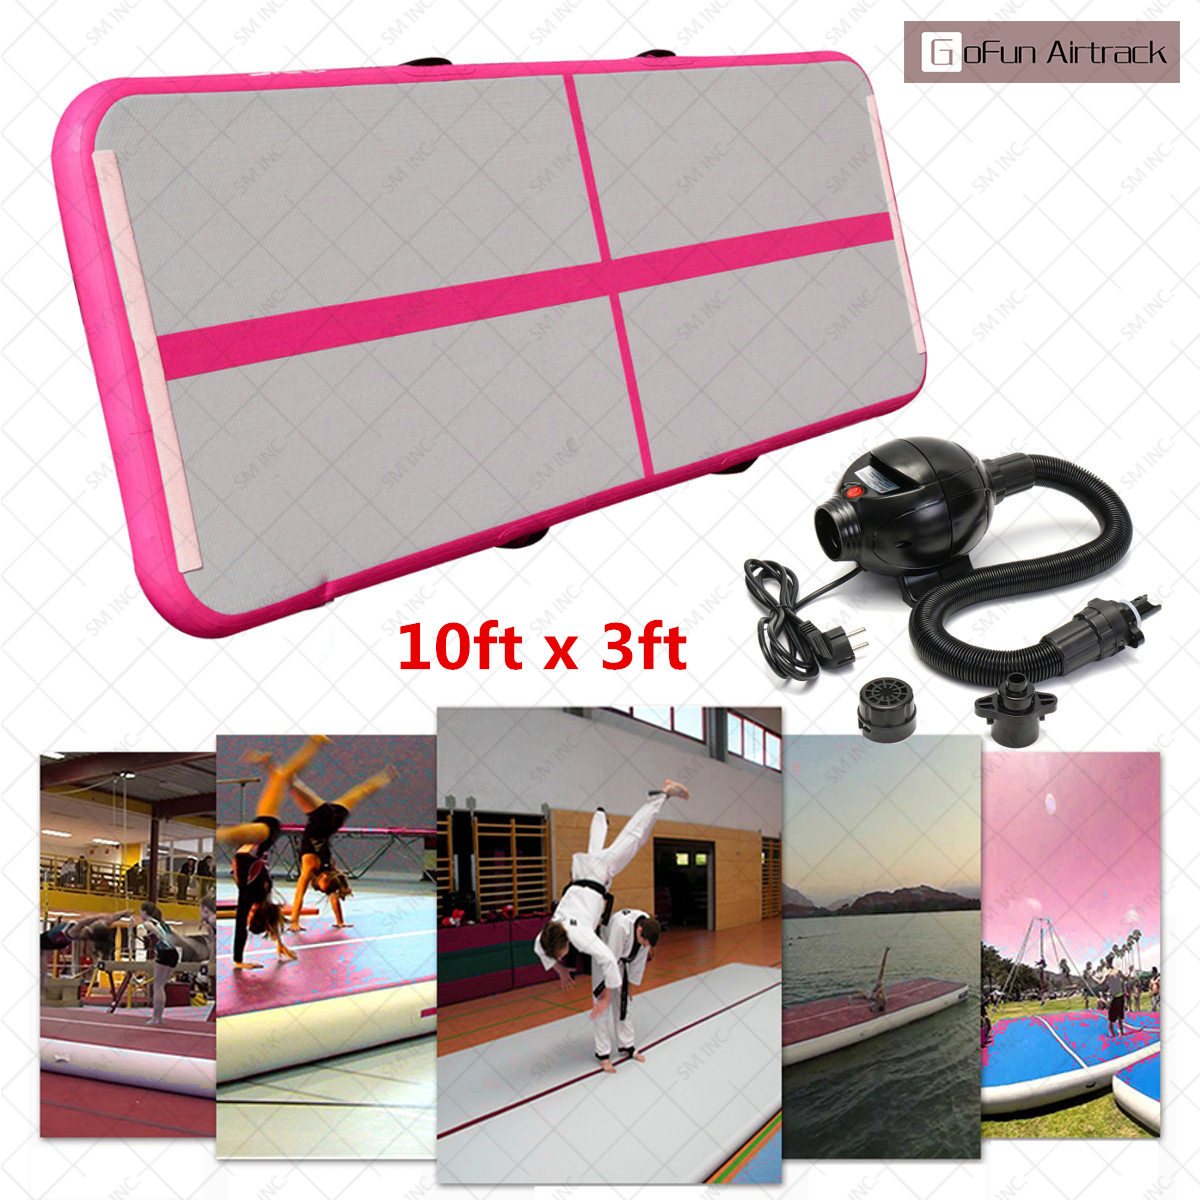 Pink Gofun AirTrack 100x300x10cm Air Mats Sport Exercise Pad Inflatable Tumbling Track Gymnastics Training Pad With Pump gofun airtrack 10ft x 3 ft air tumbling track mat gymnastics exercise pad inflatable gym training mats balance beam 110v air